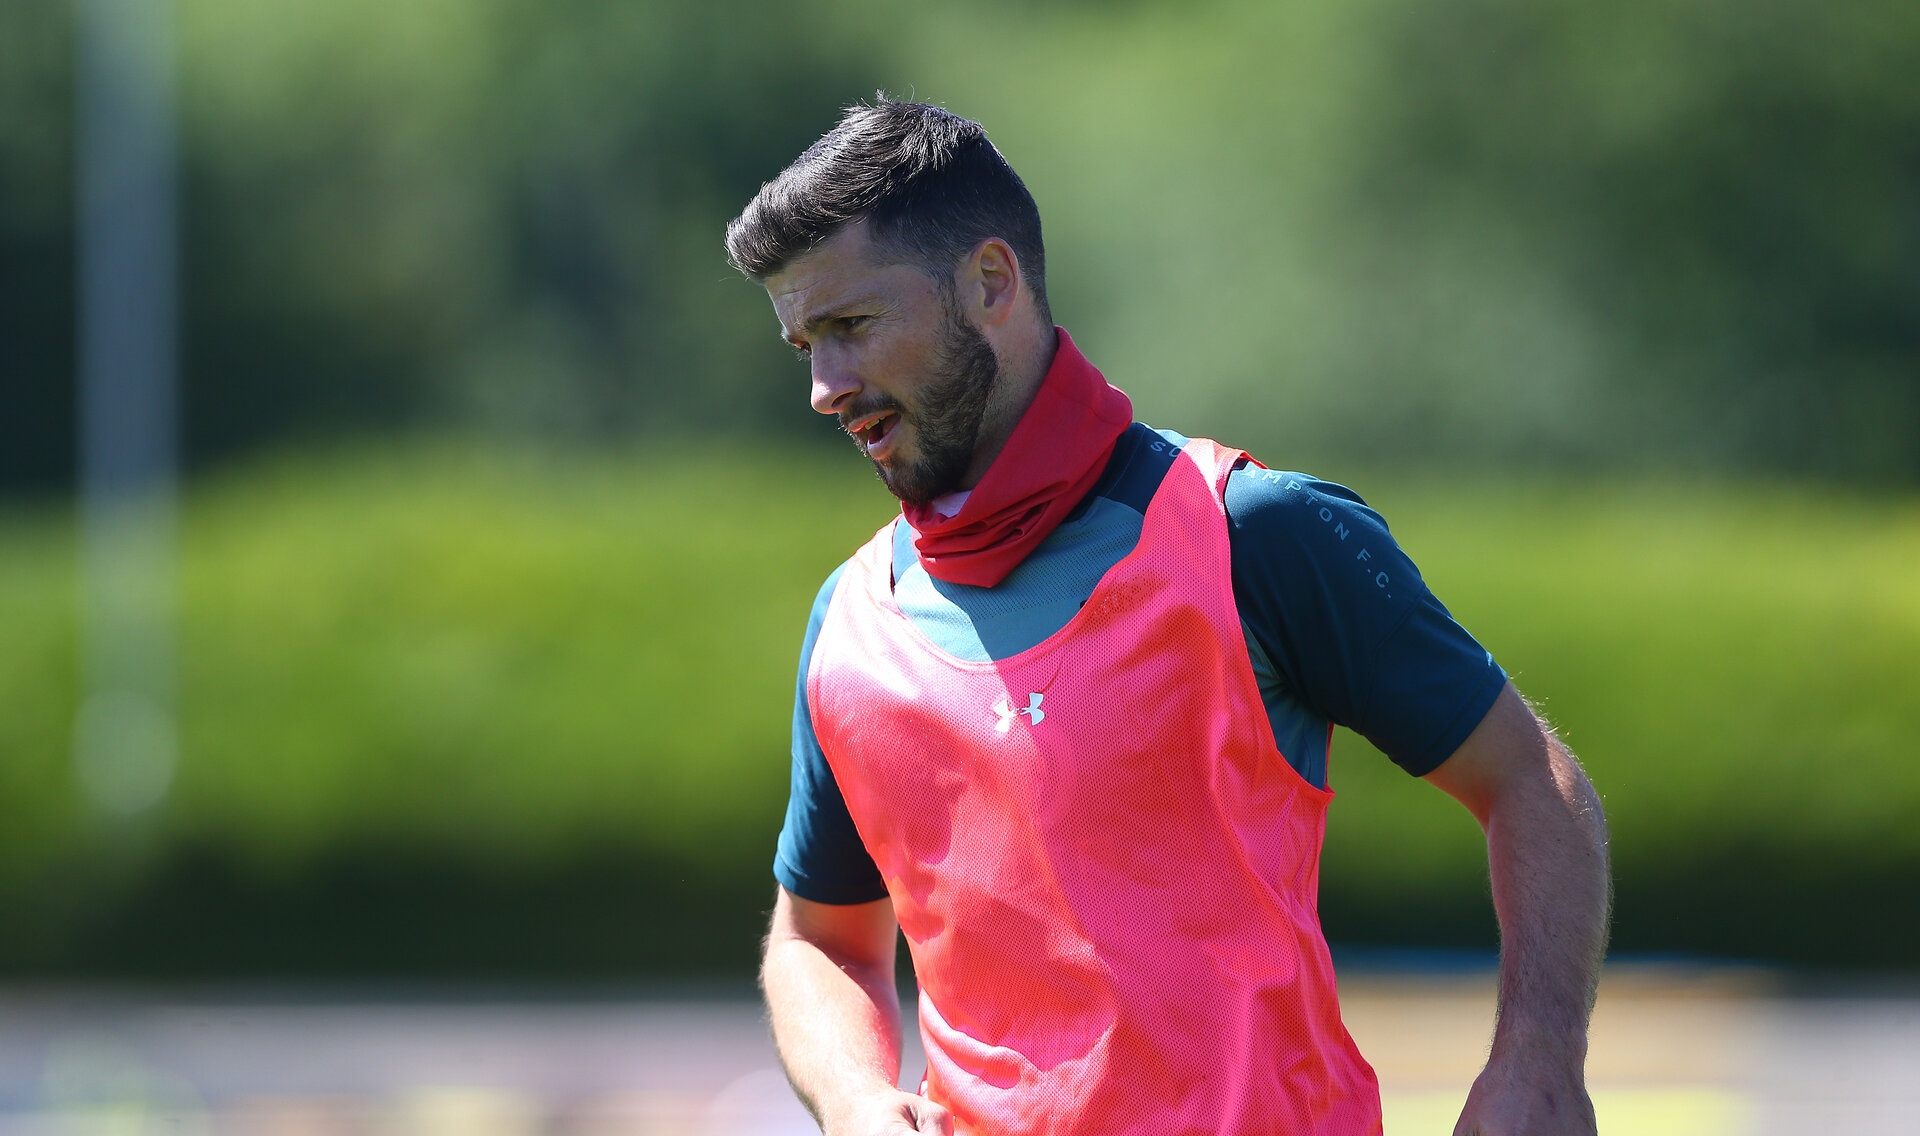 SOUTHAMPTON, ENGLAND - MAY 29: Shane Long during a Southampton FC training session, at the Staplewood Campus on May 29, 2020 in Southampton, England. (Photo by Matt Watson/Southampton FC via Getty Images)